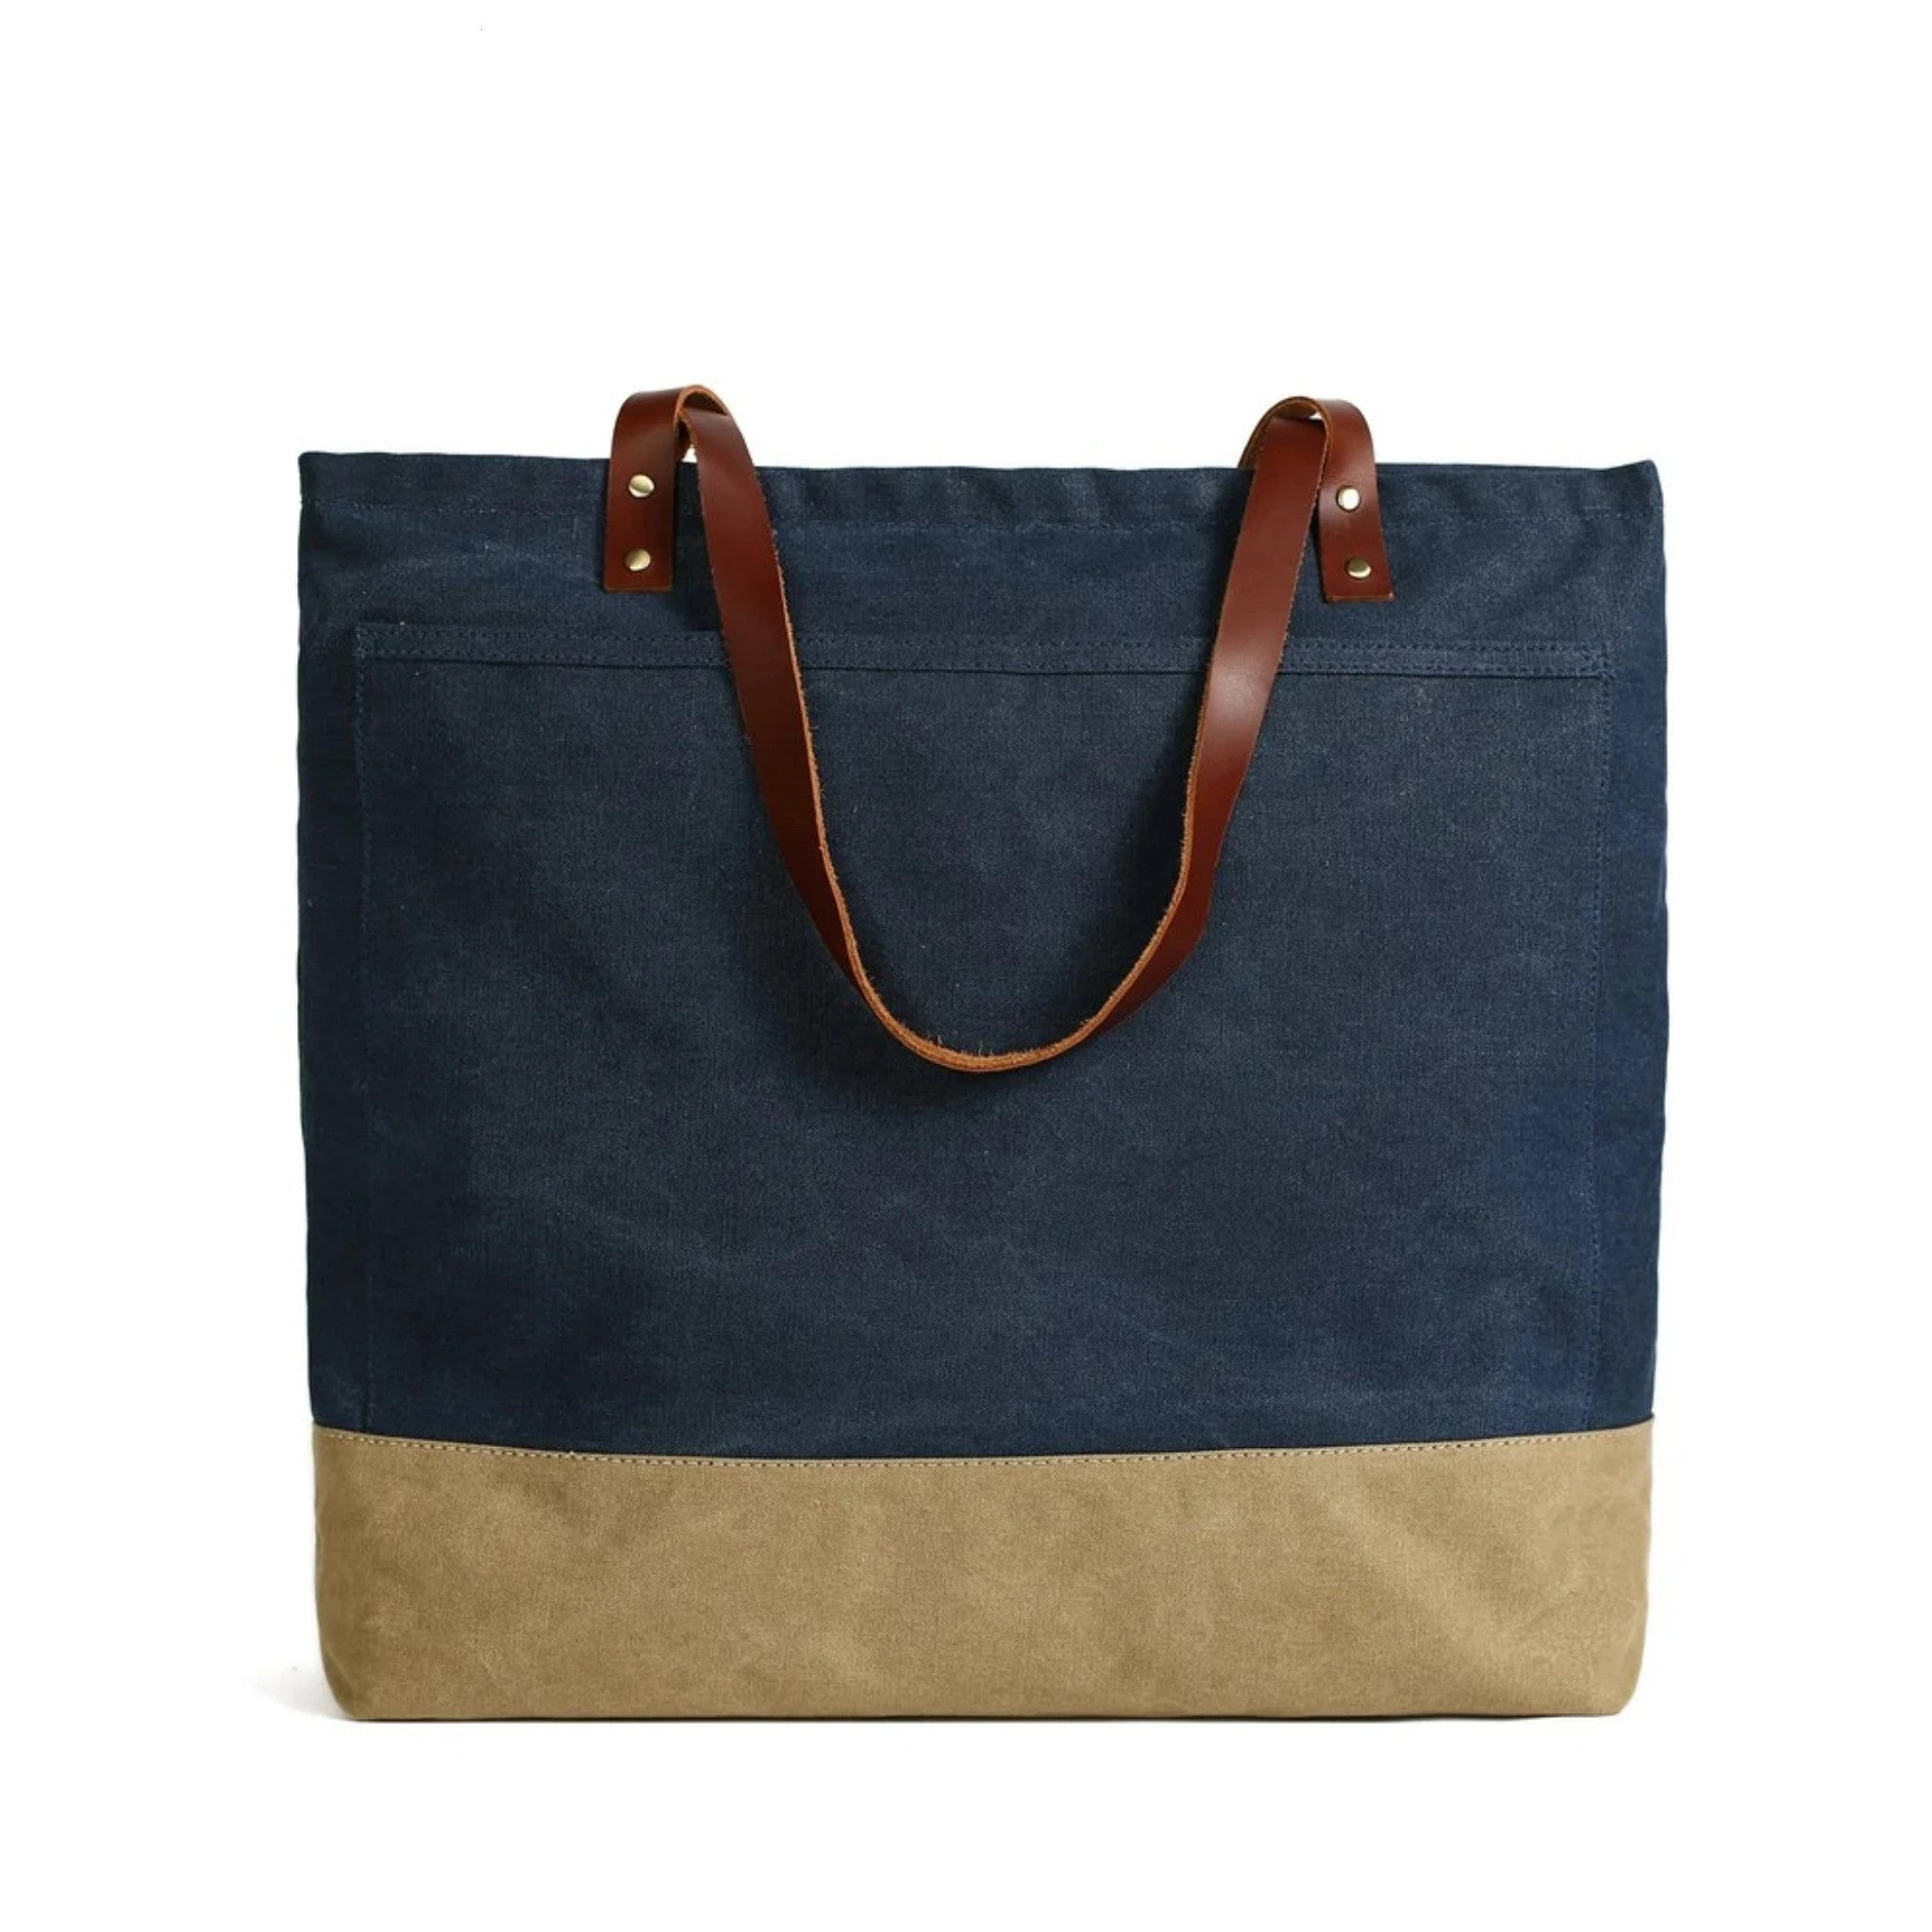 Handmade Canvas Tote Bag with Leather Handle - Blue Sebe